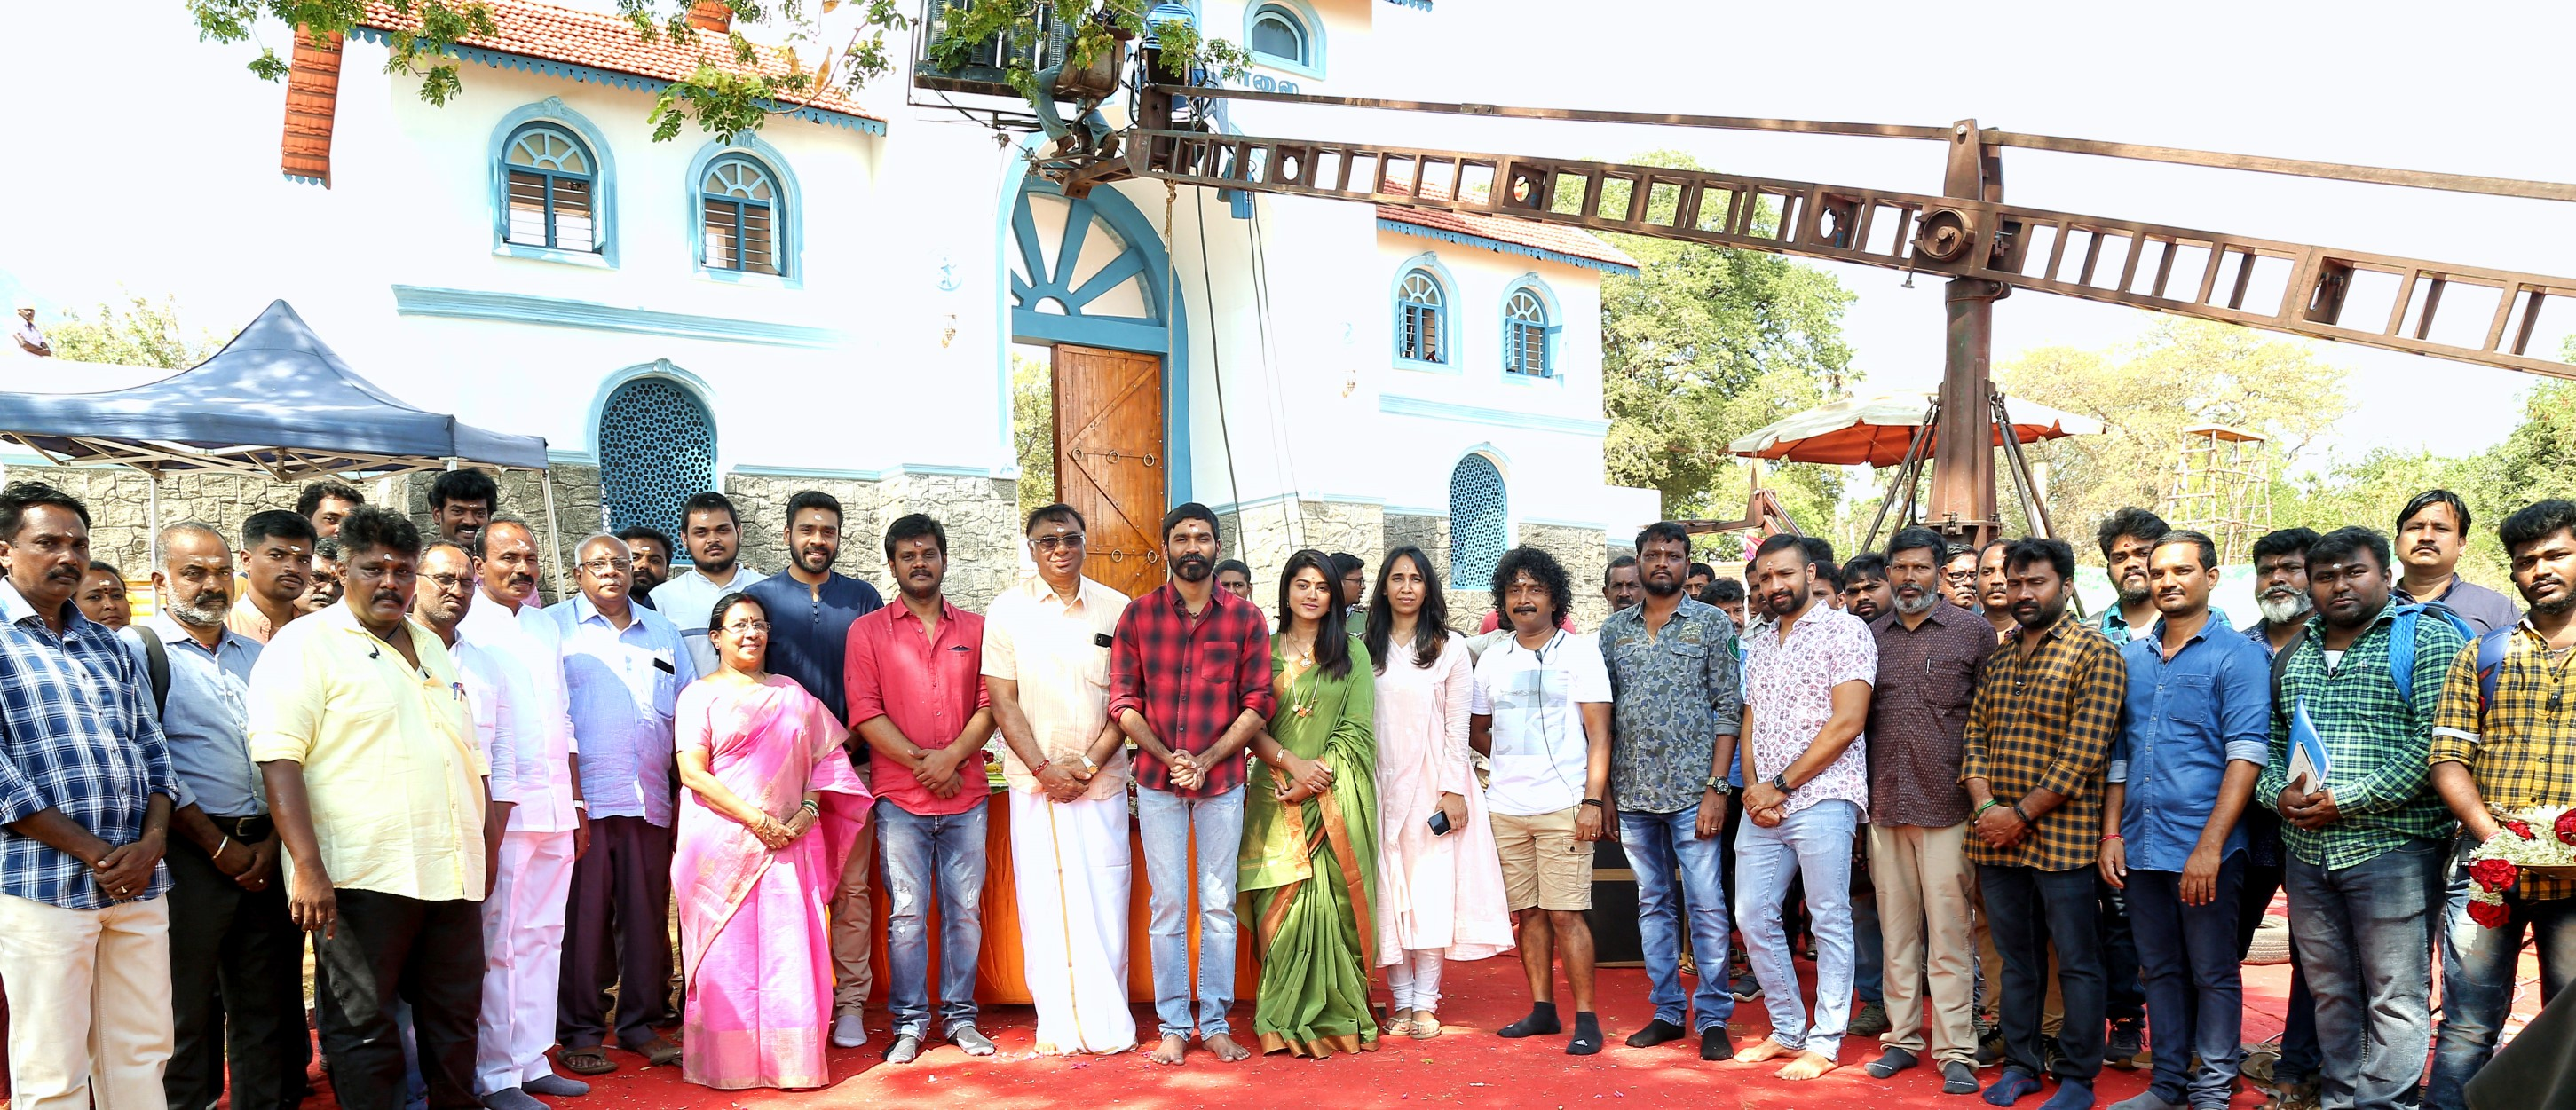 Sathya Jyothi Production No 34 Movie Pooja Stills